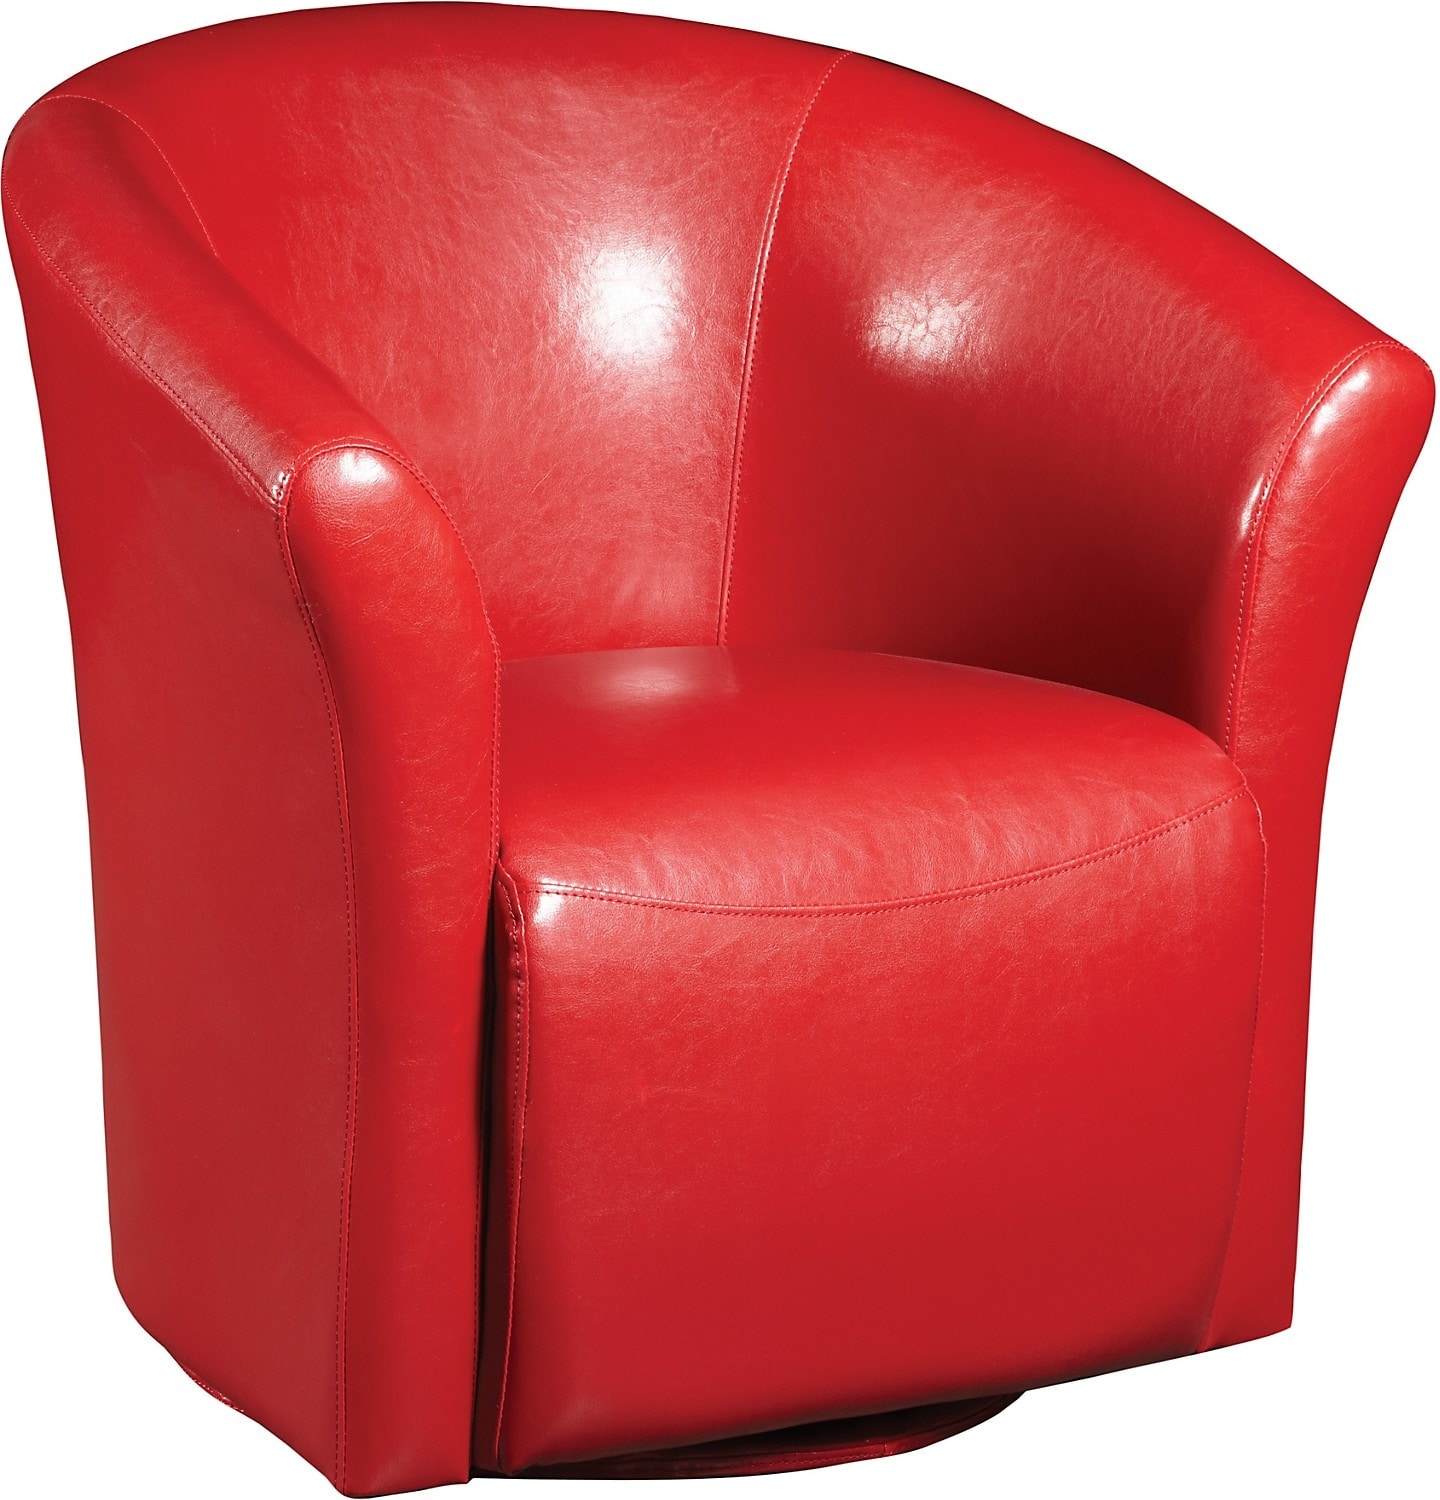 Red Swivel Chair Ethan Red Faux Leather Swivel Accent Chair The Brick